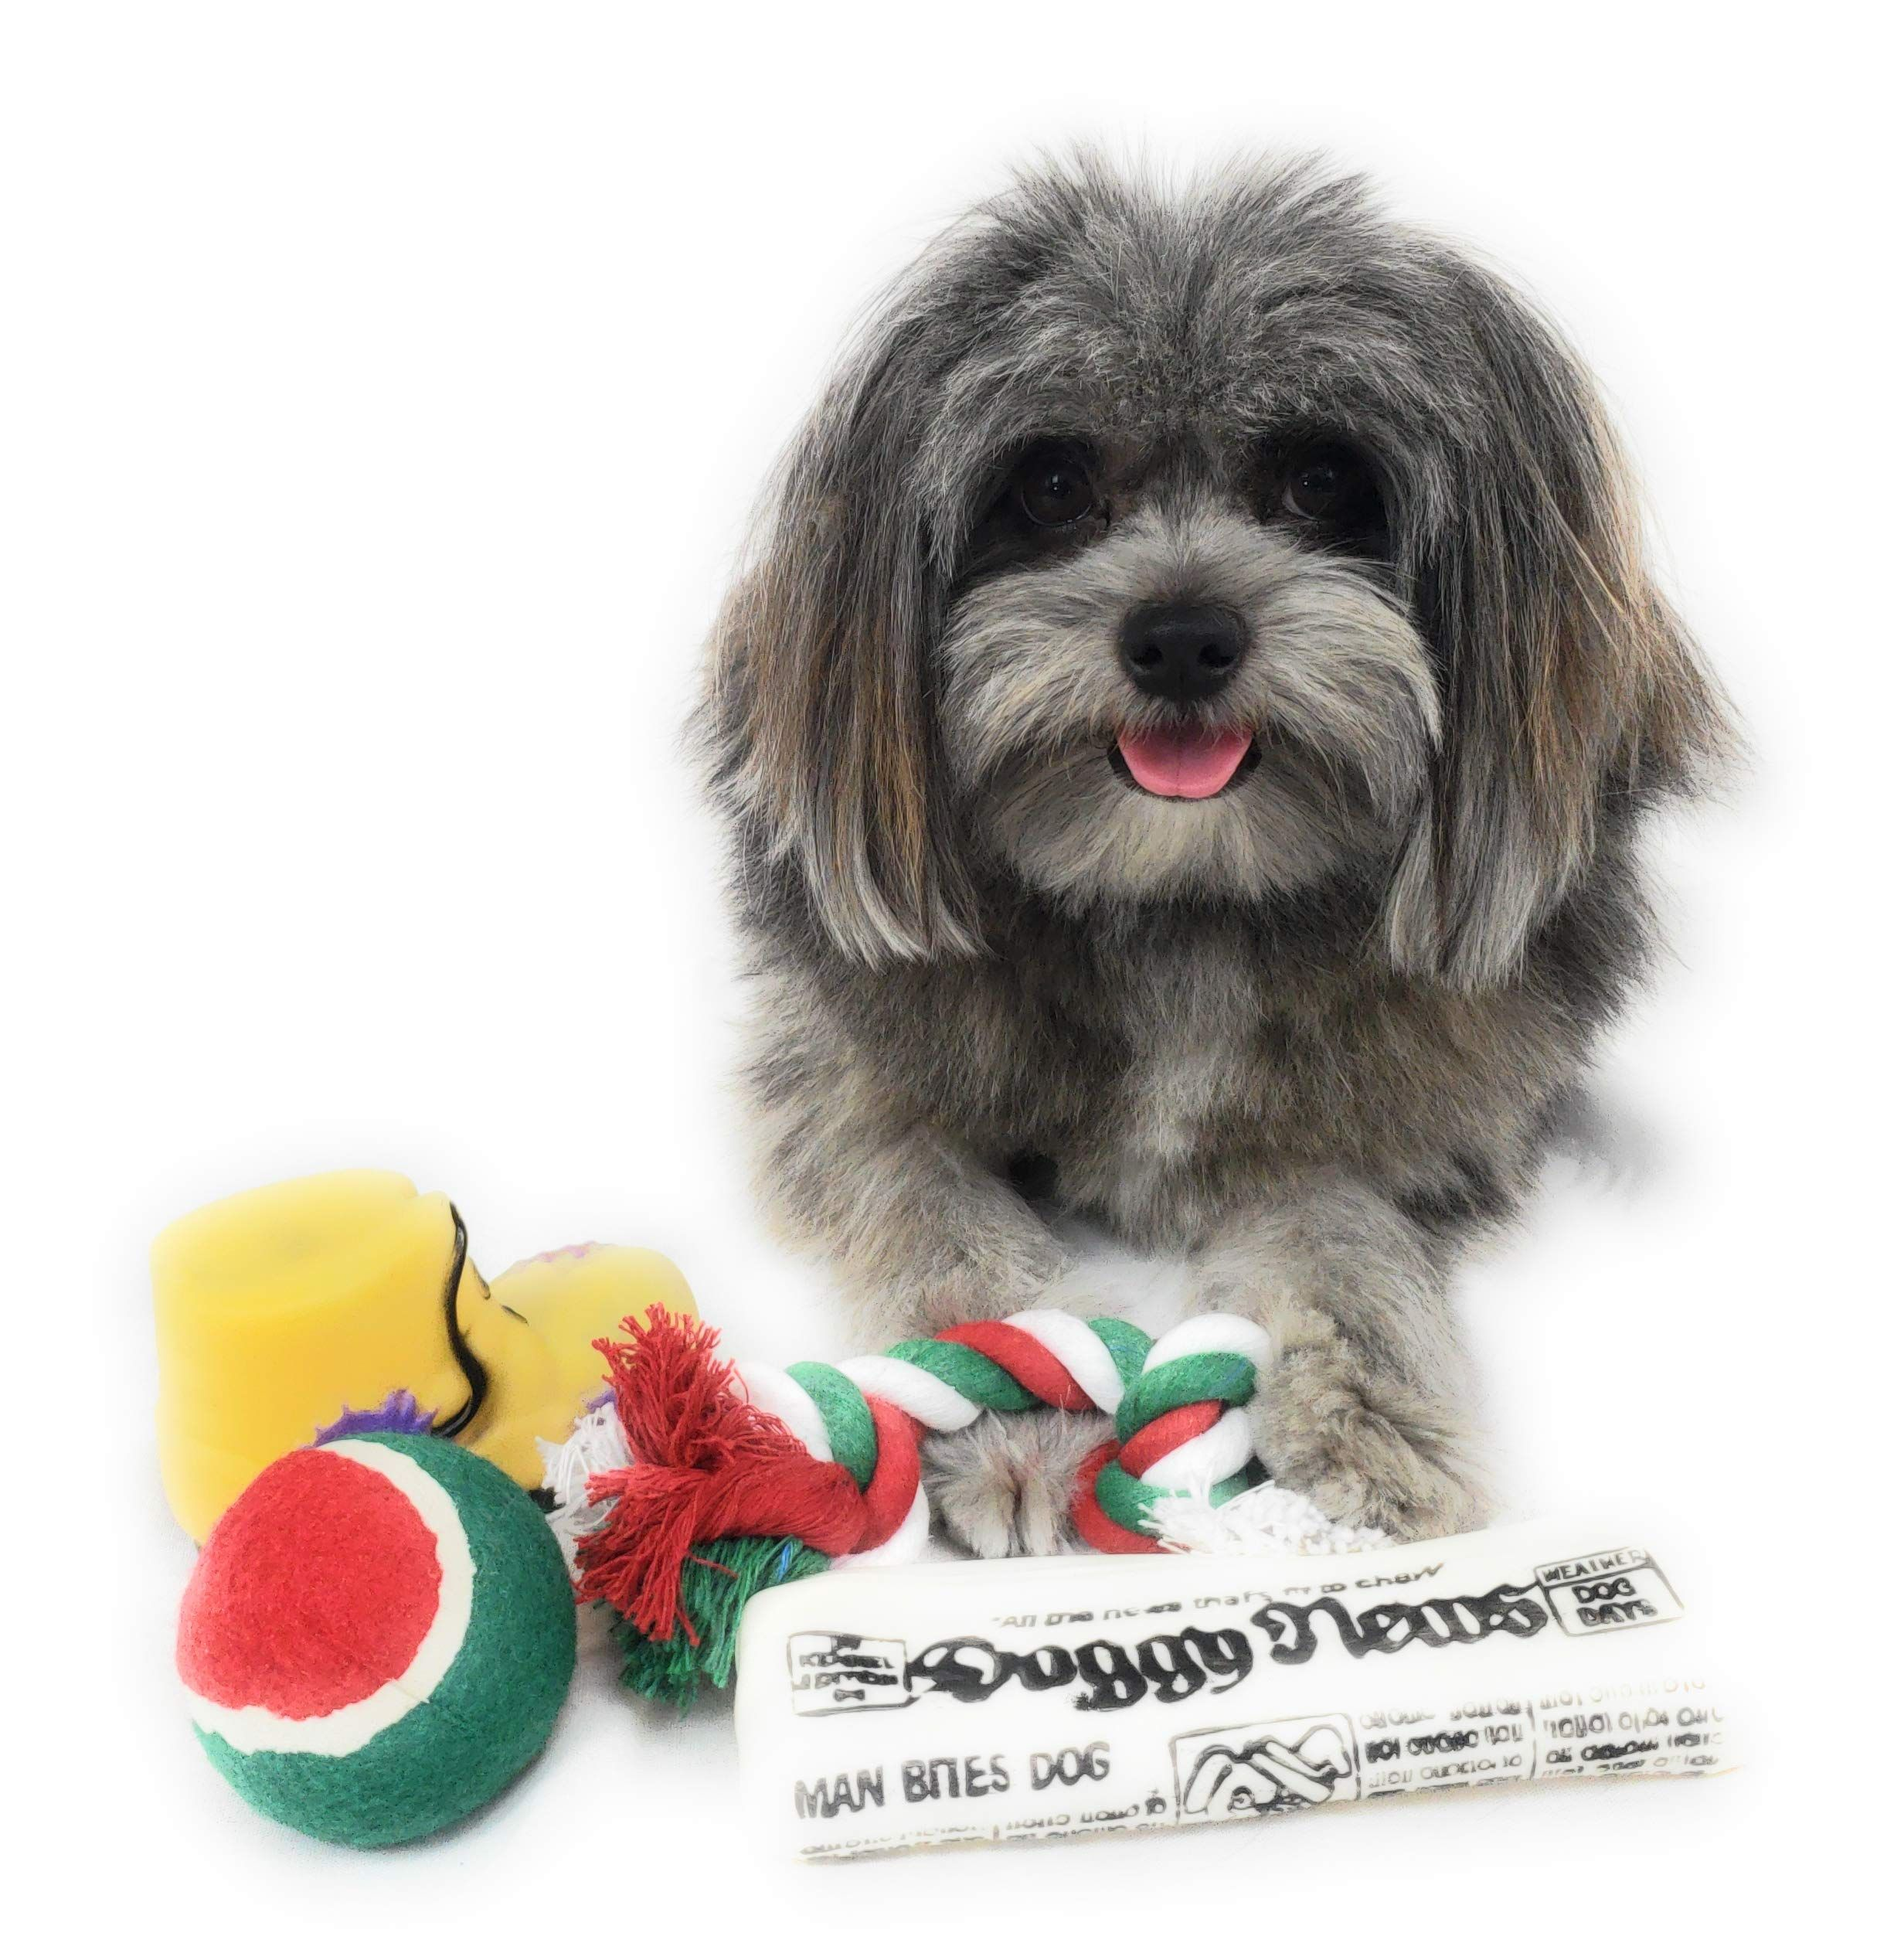 Christmas Stocking For Dogs Pack Of Squeaky Newspaper Toy Squeaky